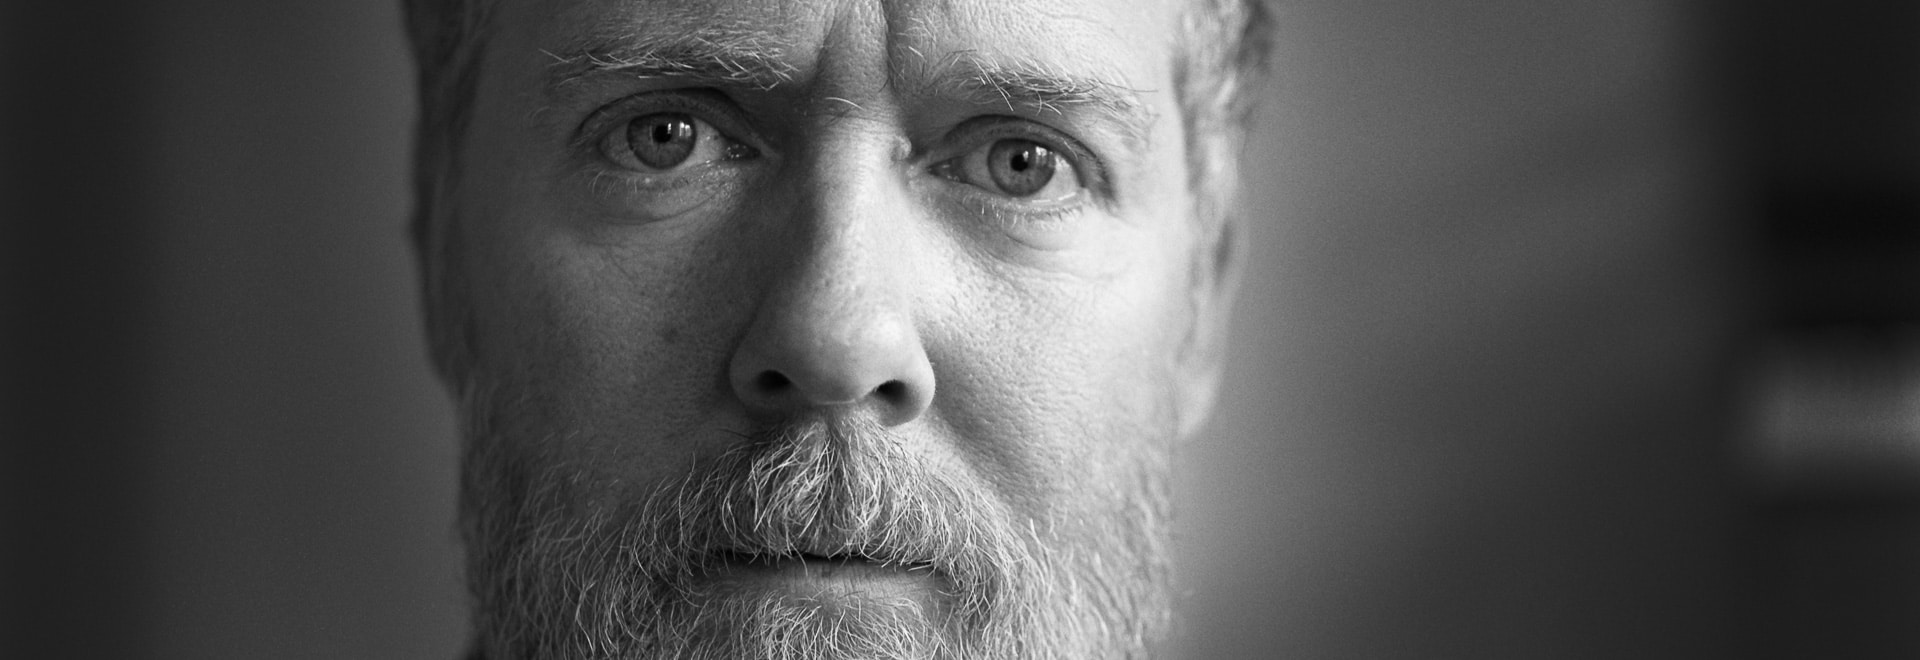 Portret Glen Hansard - ©Jelmer de Haas - All Rights Reserved